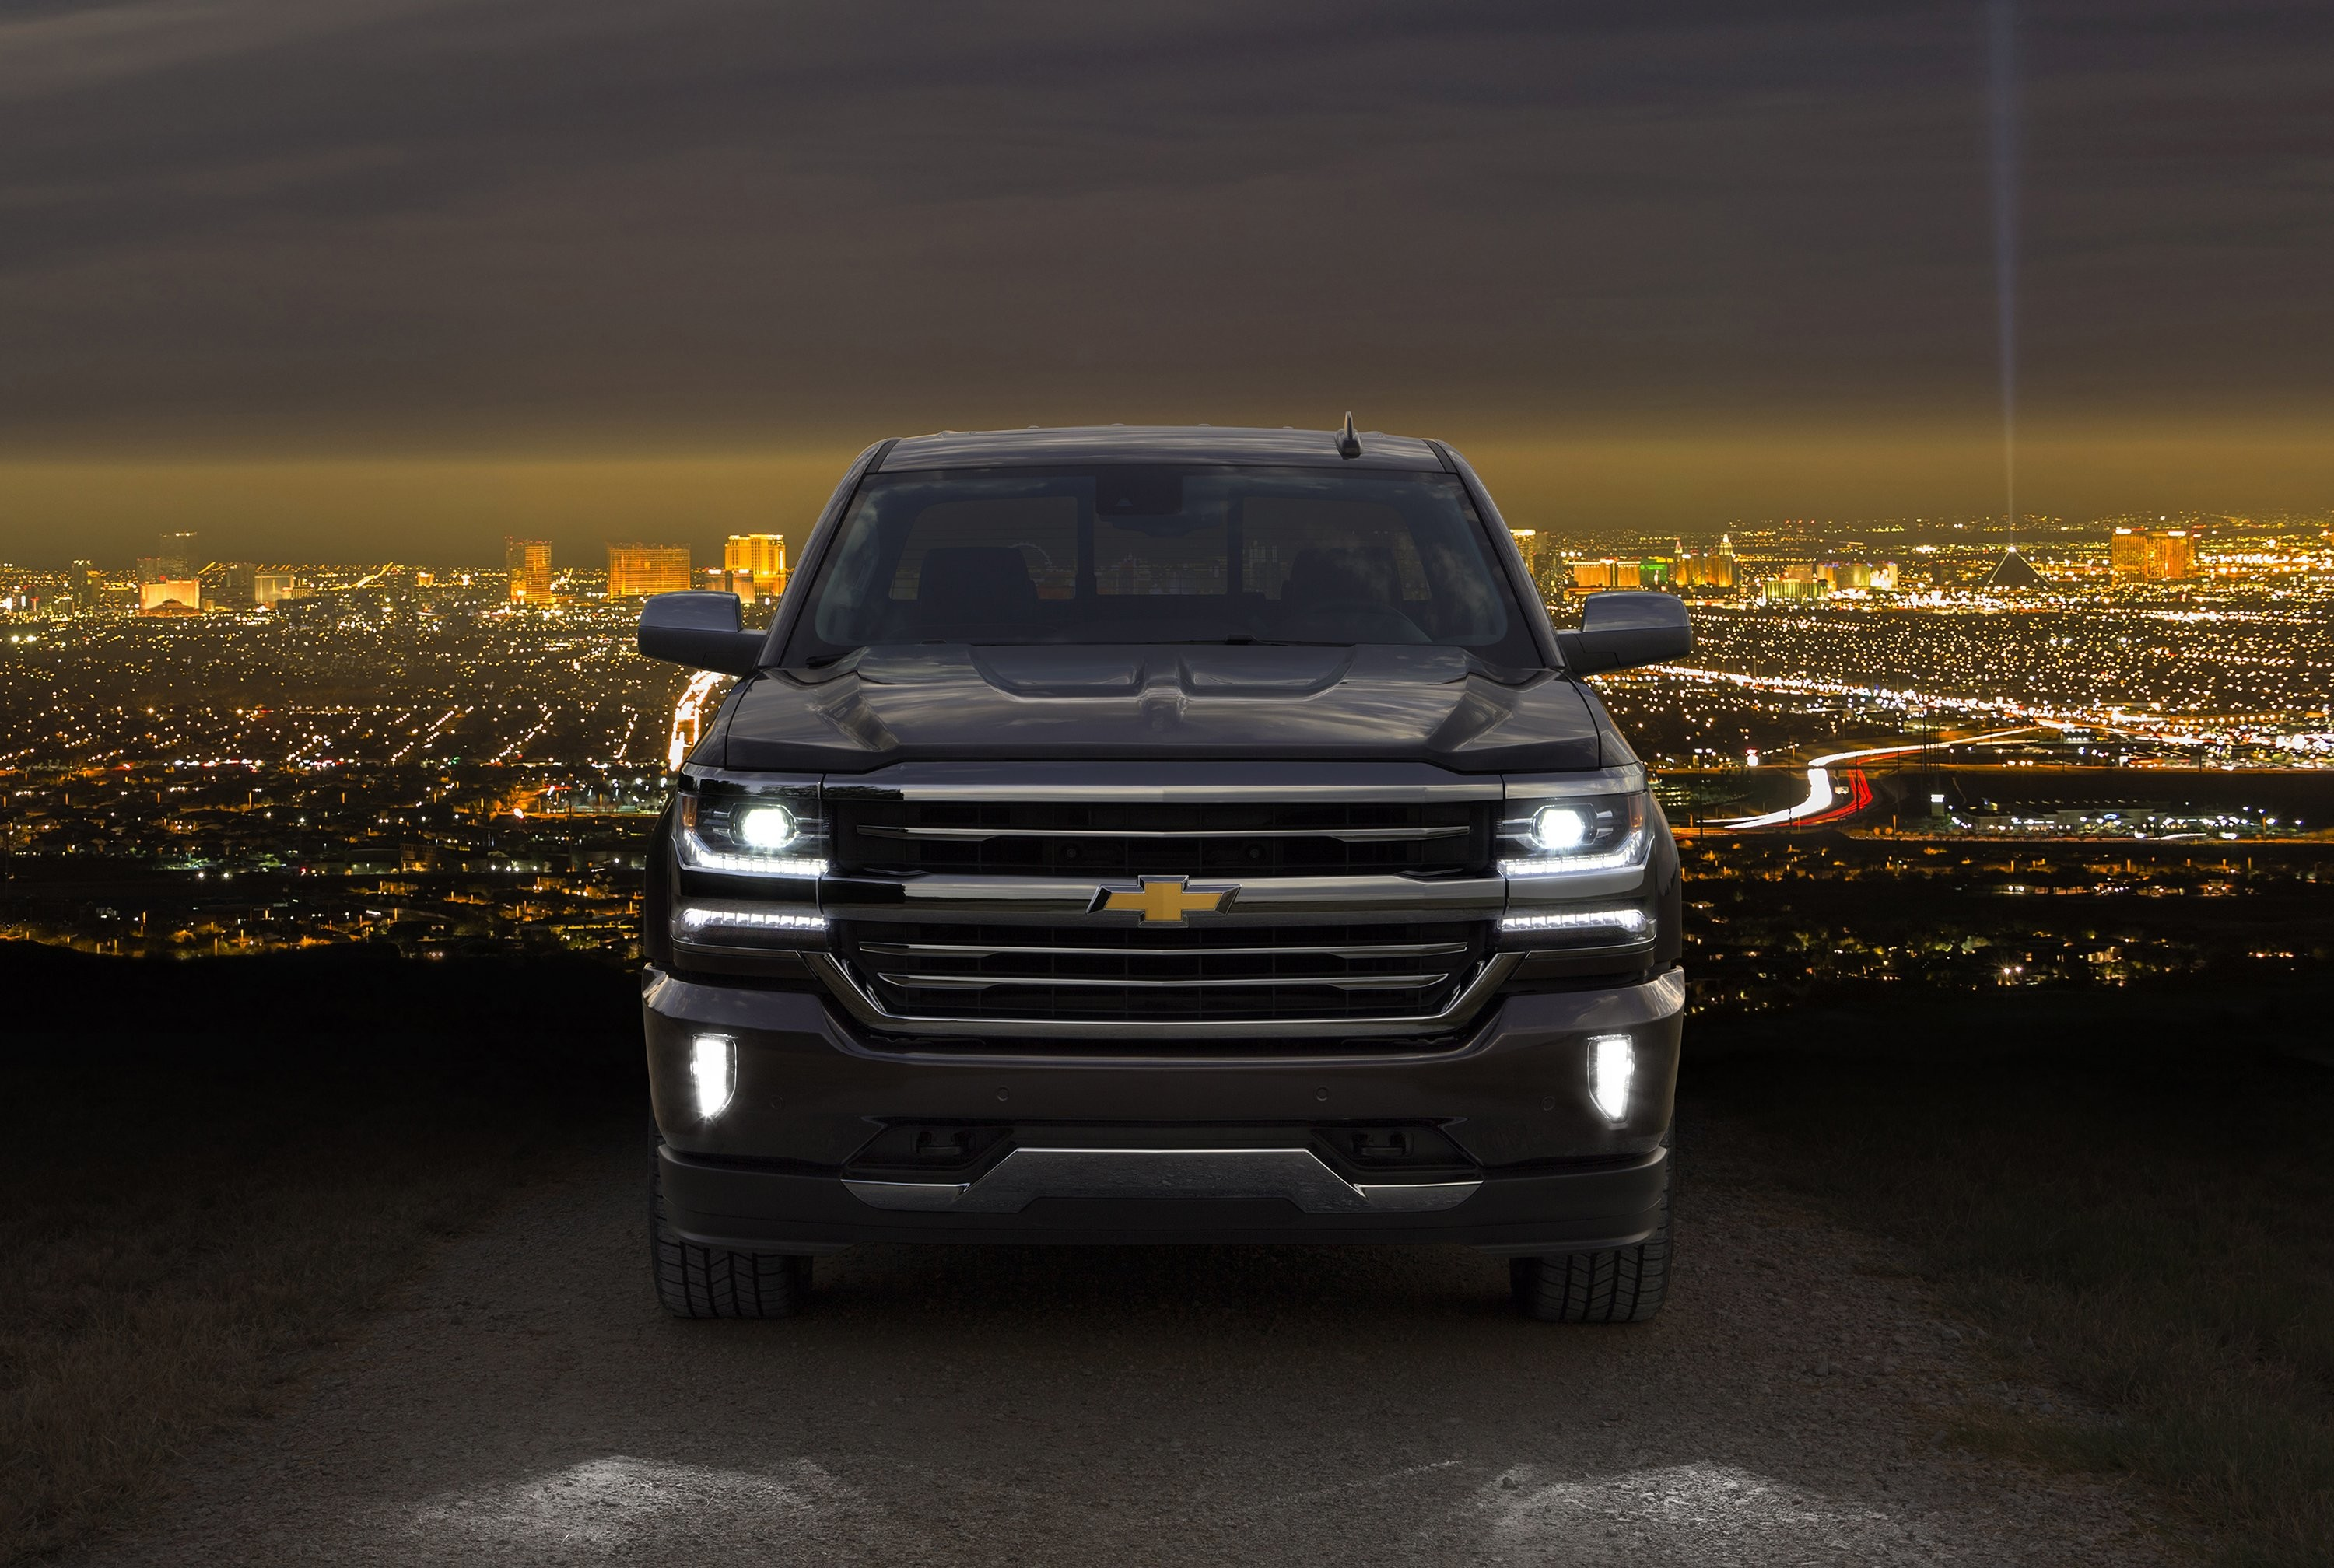 3000x2016 2016 Chevrolet Silverado High Country Crew Cab pickup wallpaper |   | 815021 | WallpaperUP